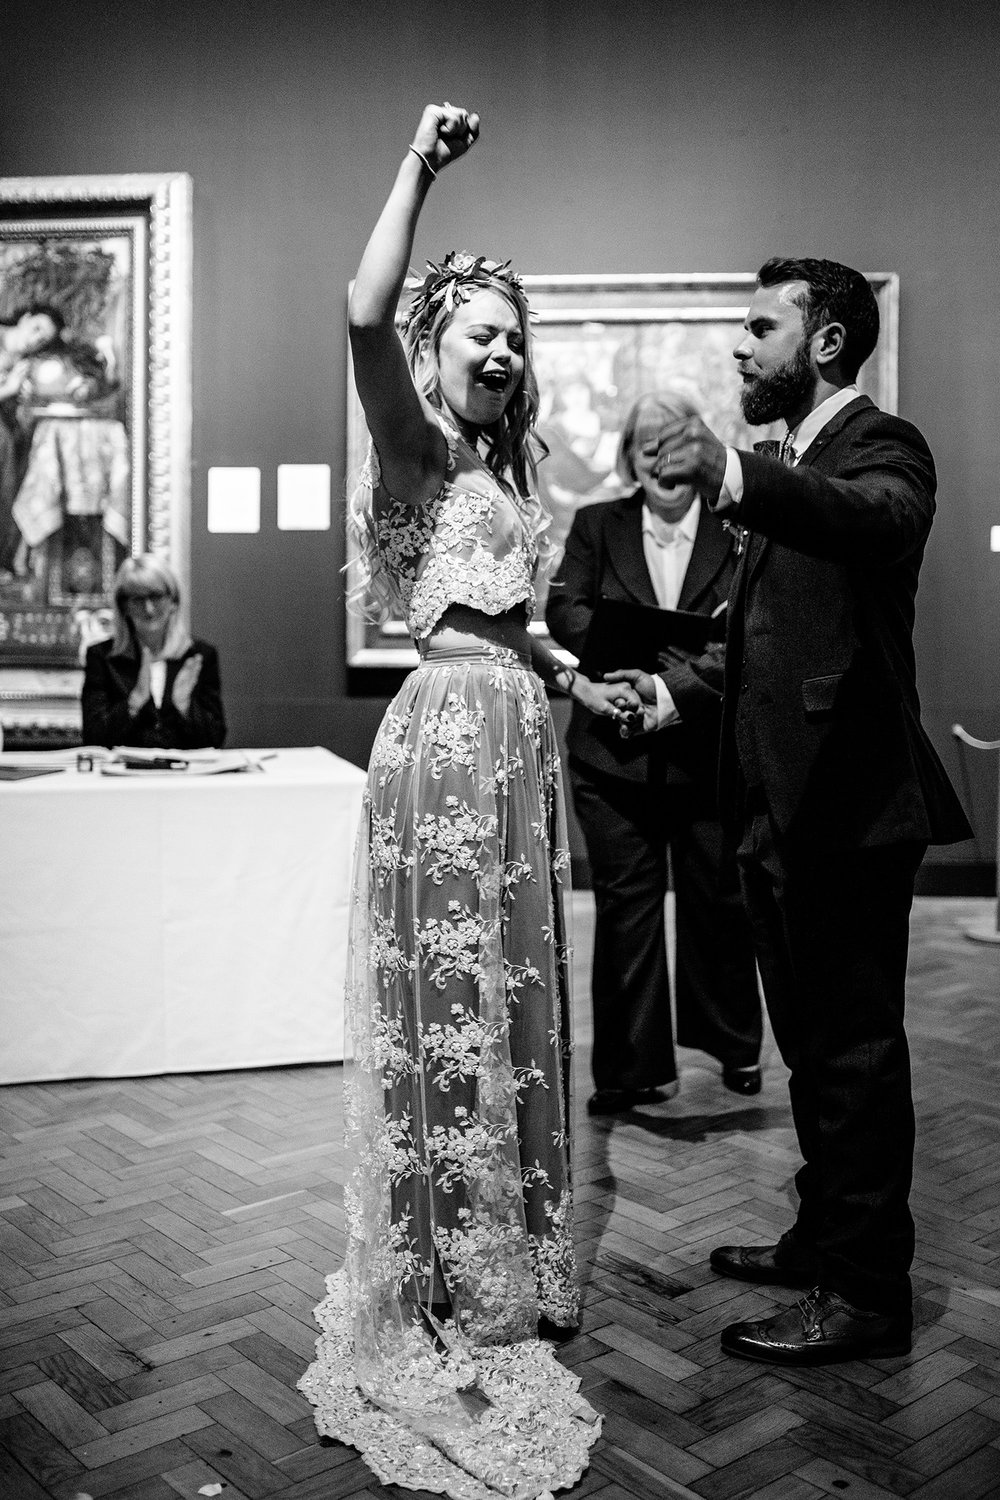 LAING ART GALLERY NEWCASTLE WEDDING PHOTOGRAPHY 76.JPG